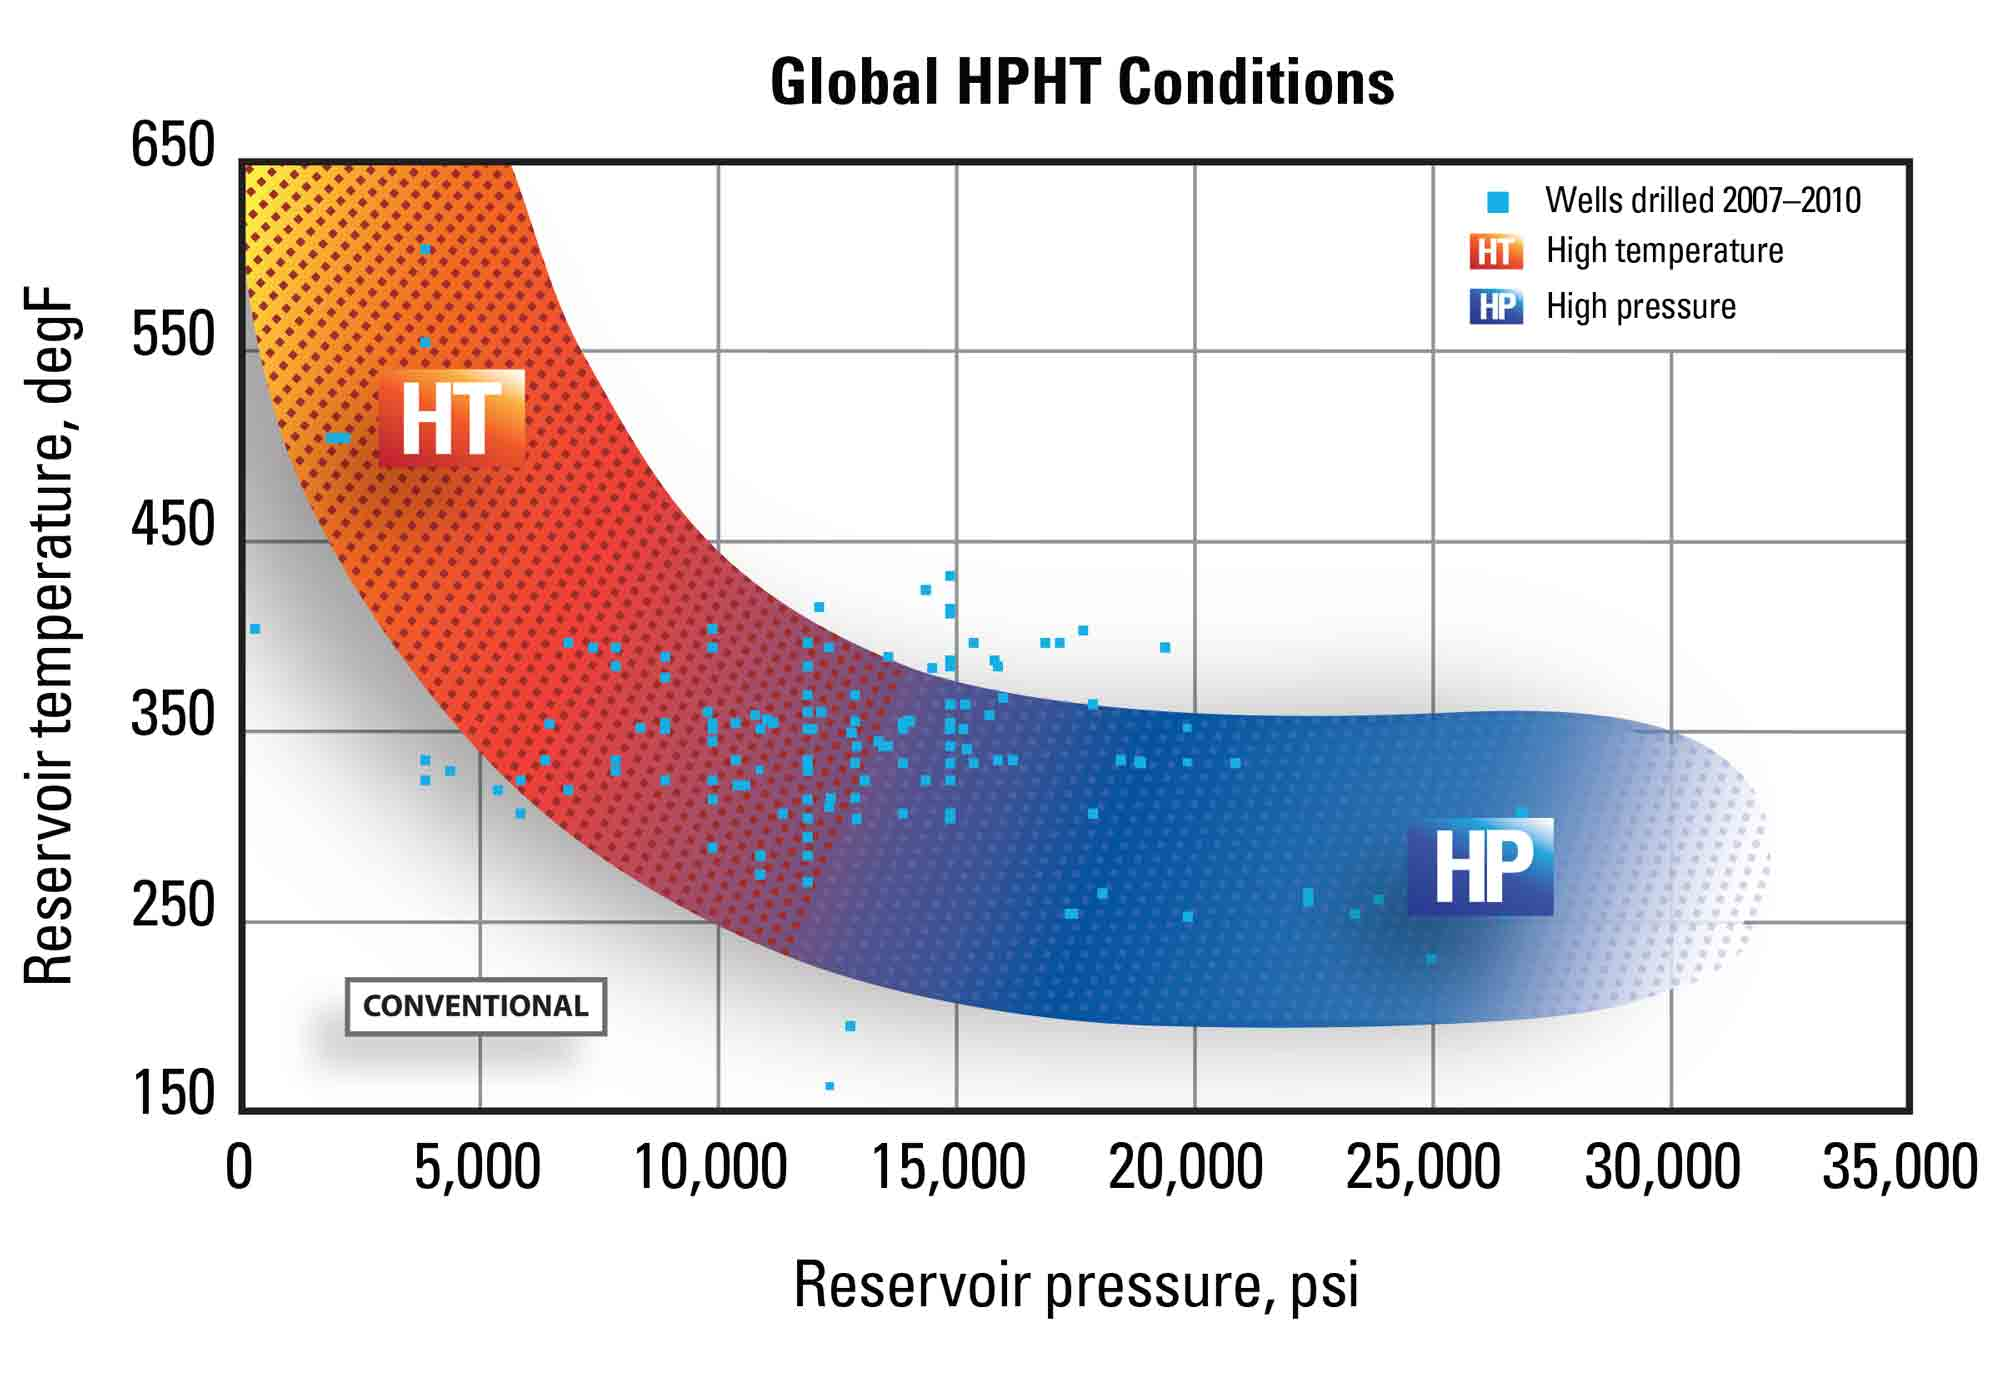 Global HPHT Conditions